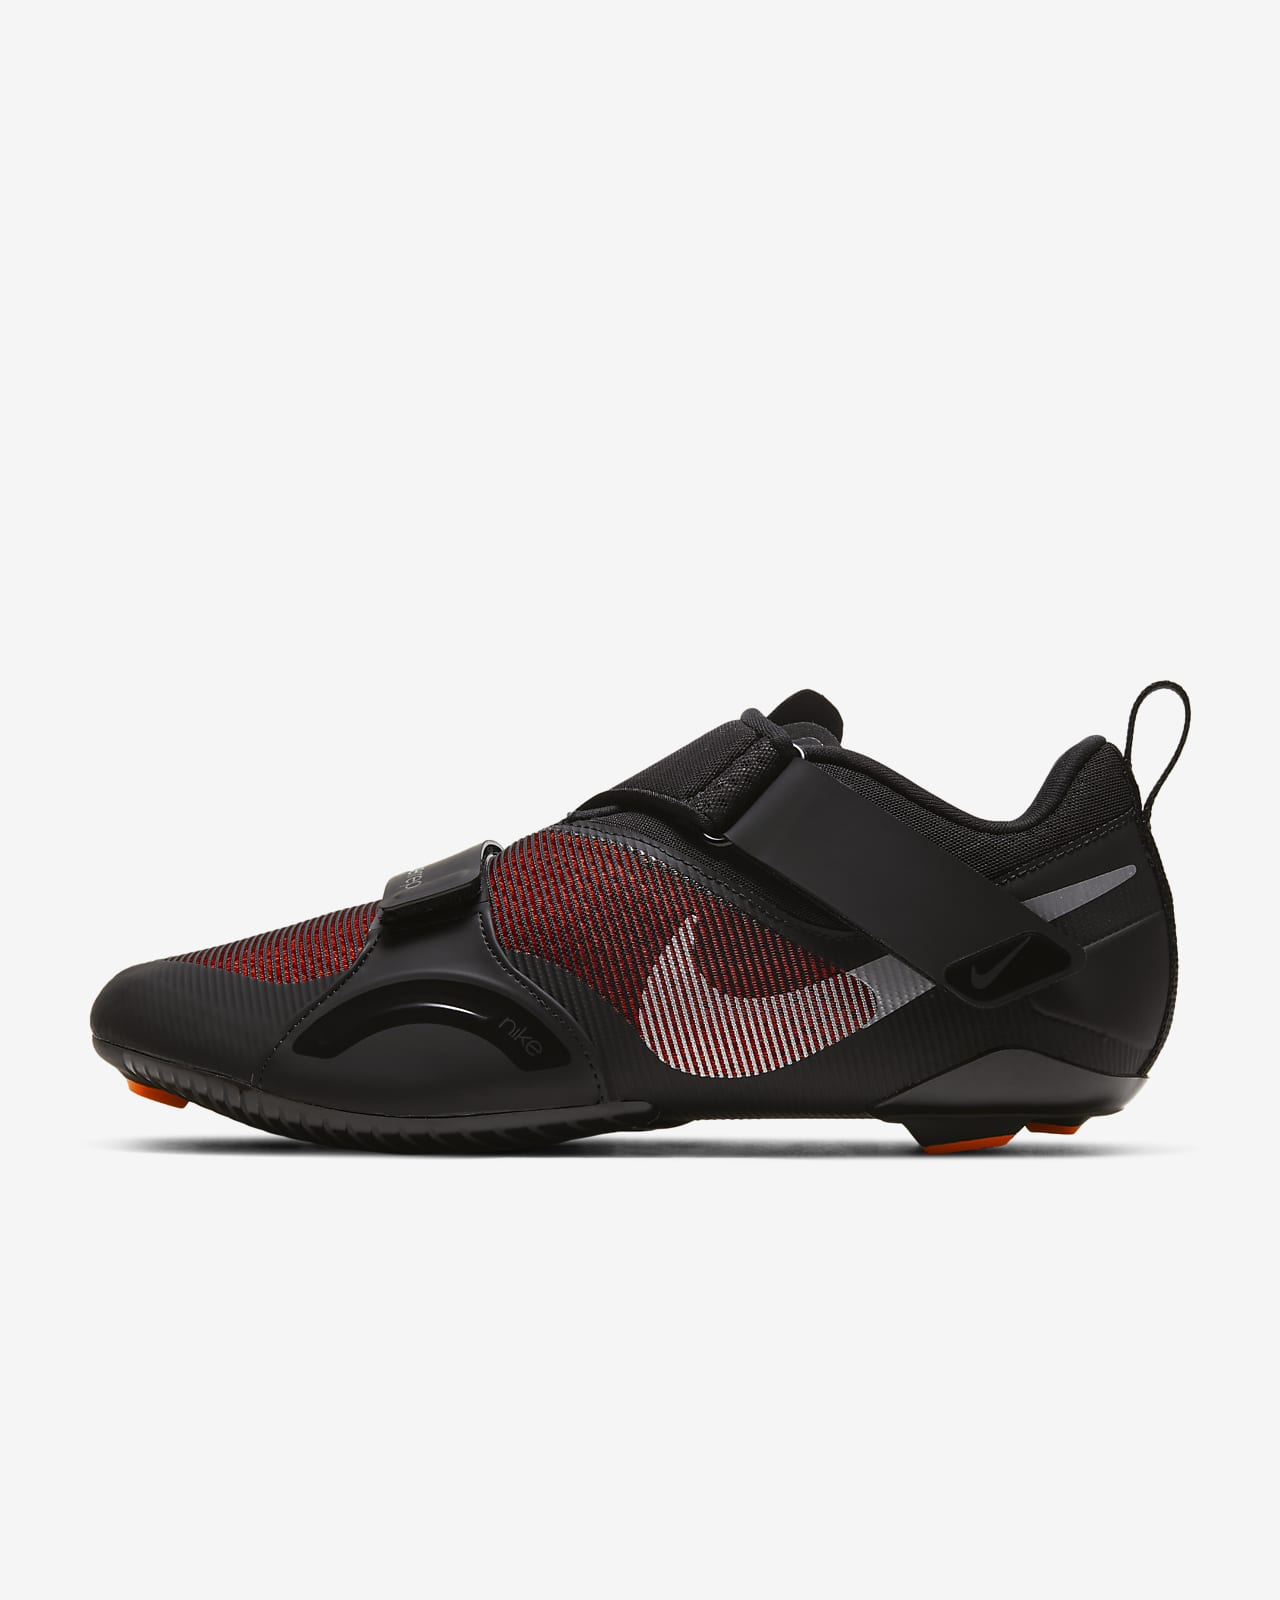 Scarpa da ciclismo indoor Nike SuperRep Cycle - Uomo